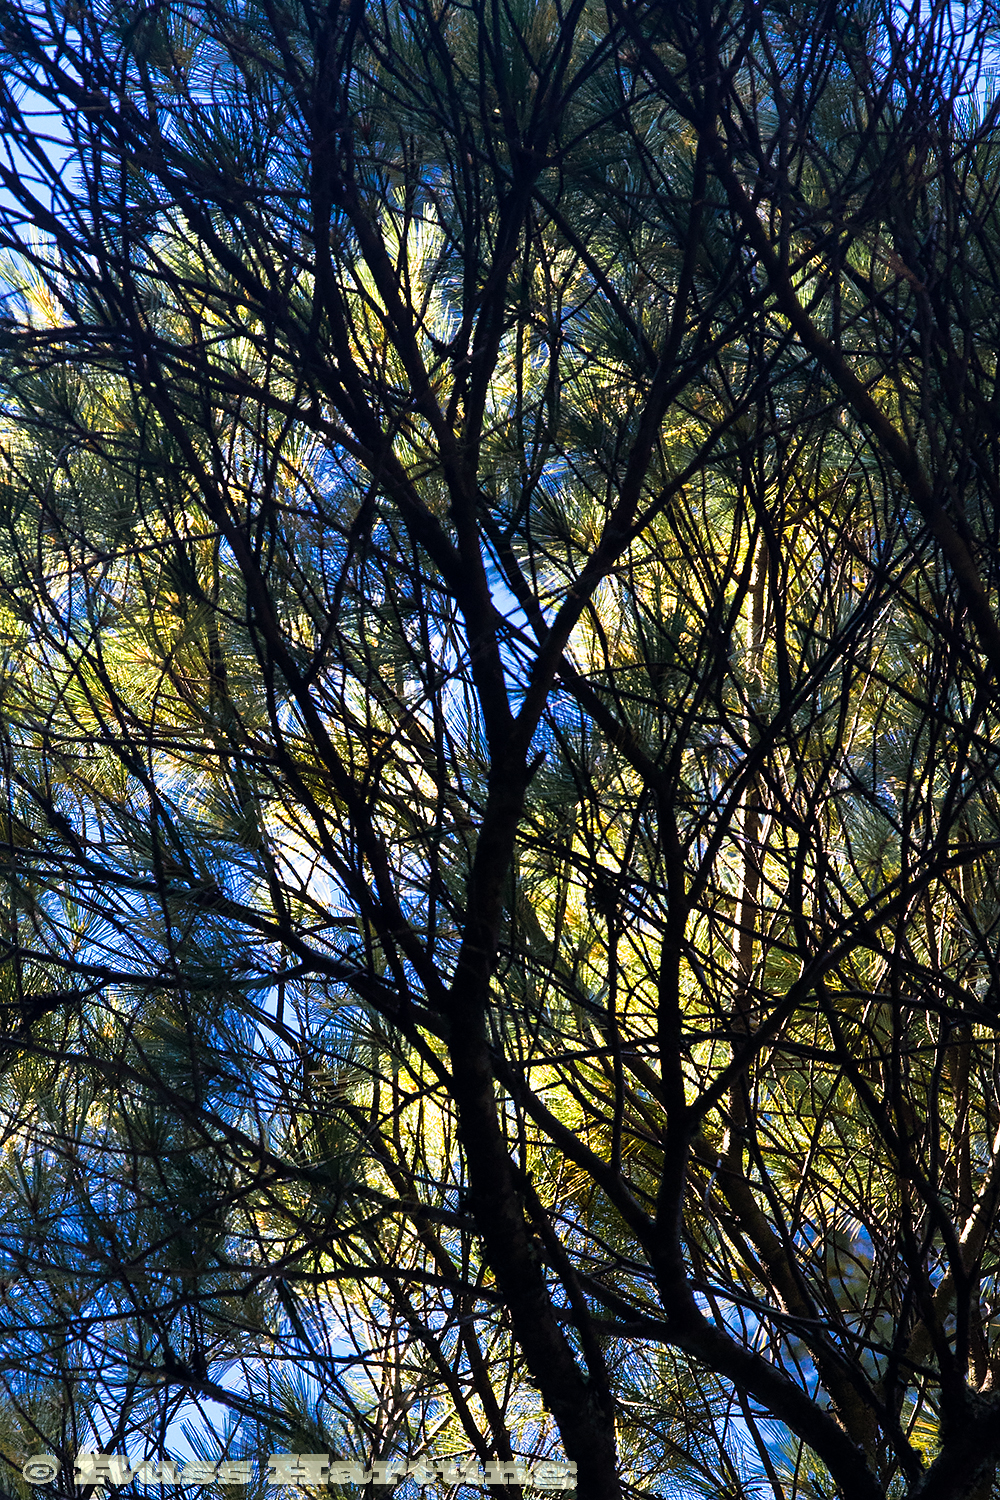 Blue sky shows through dark branches and bright yellow leaves.